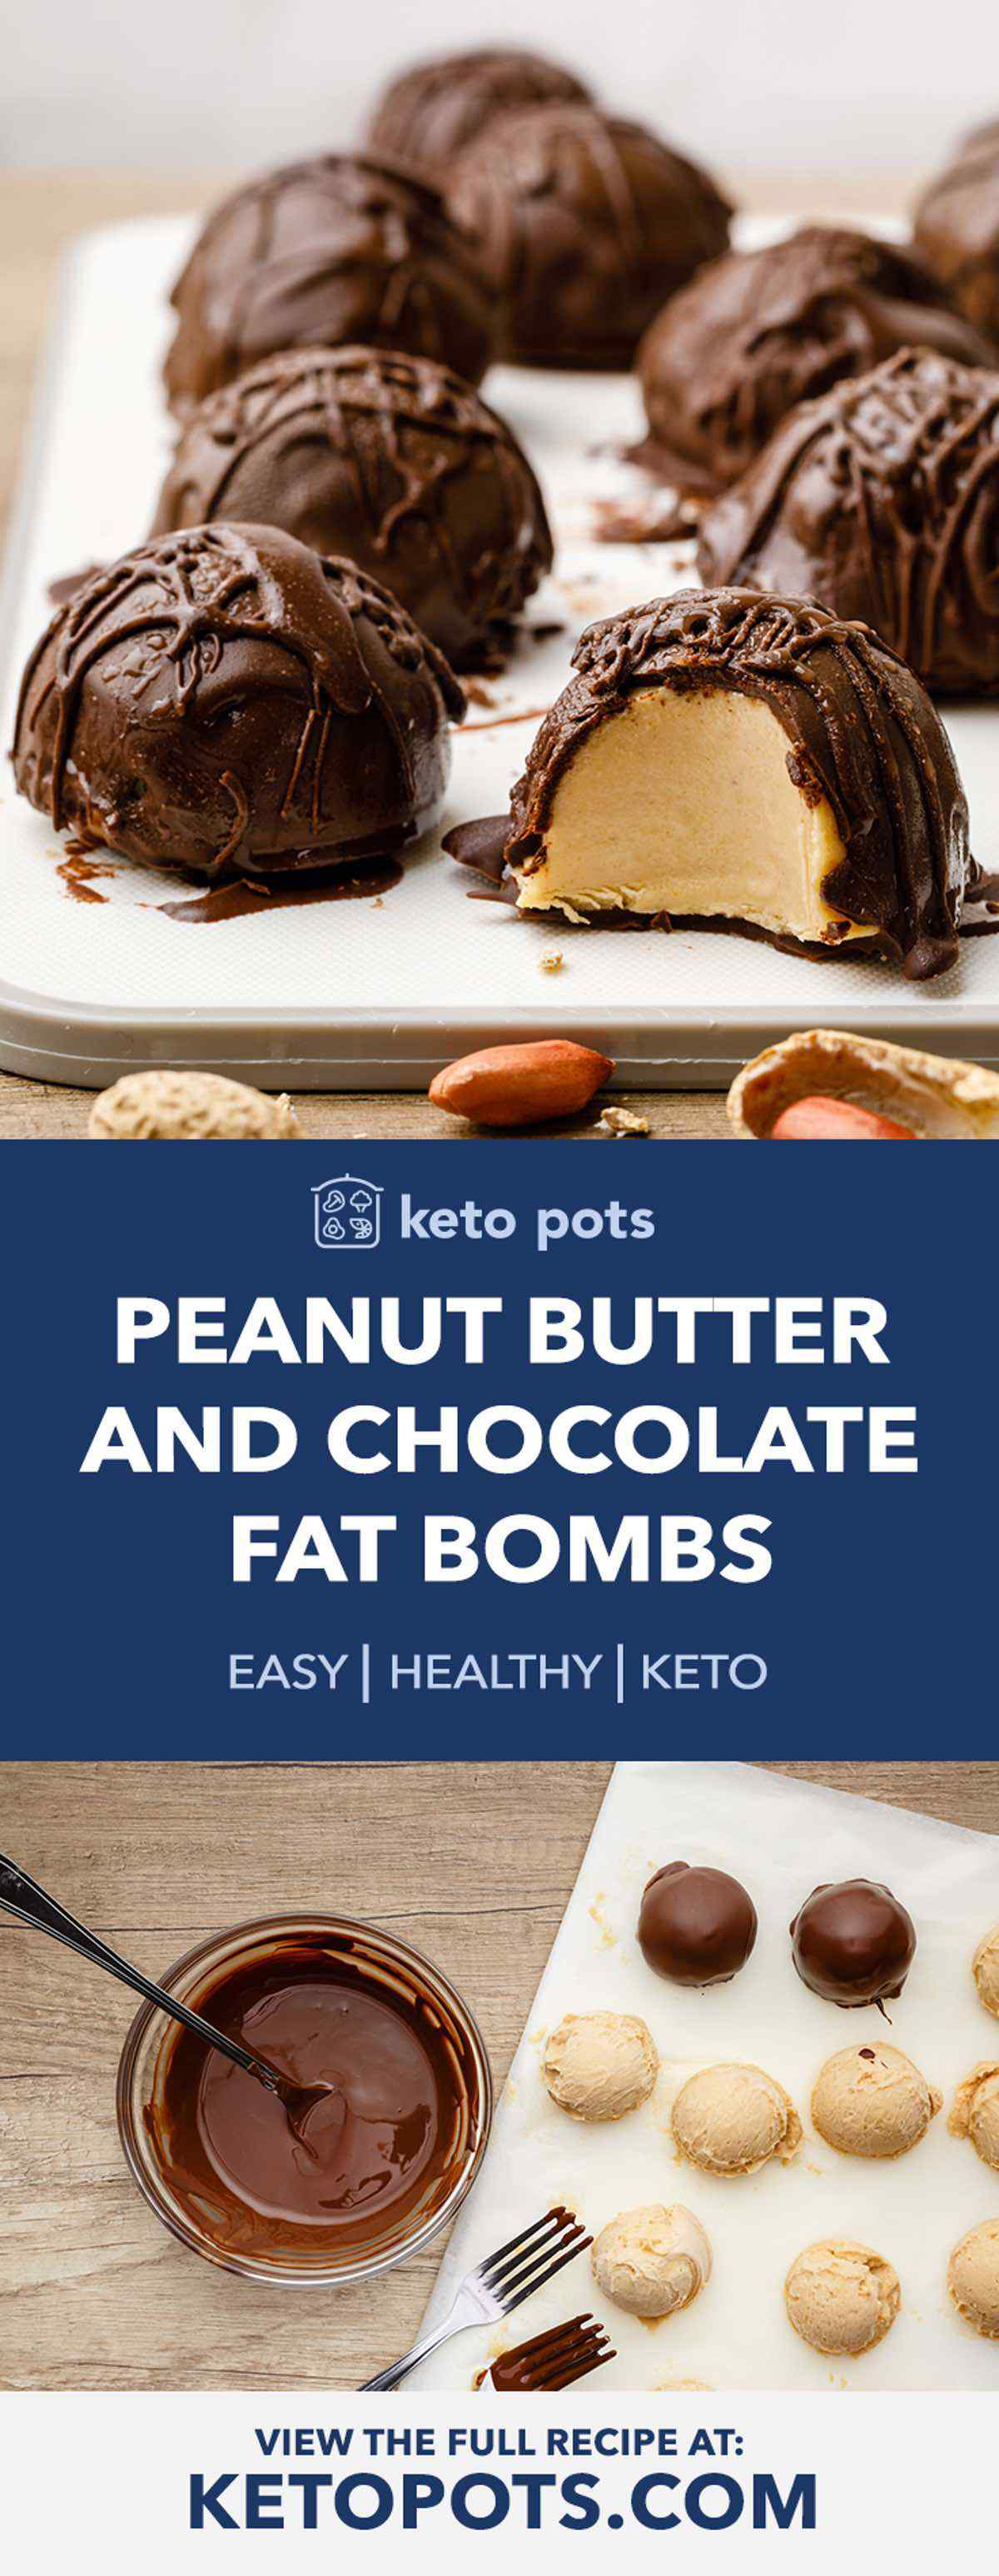 Peanut Butter and Chocolate Keto Fat Bombs